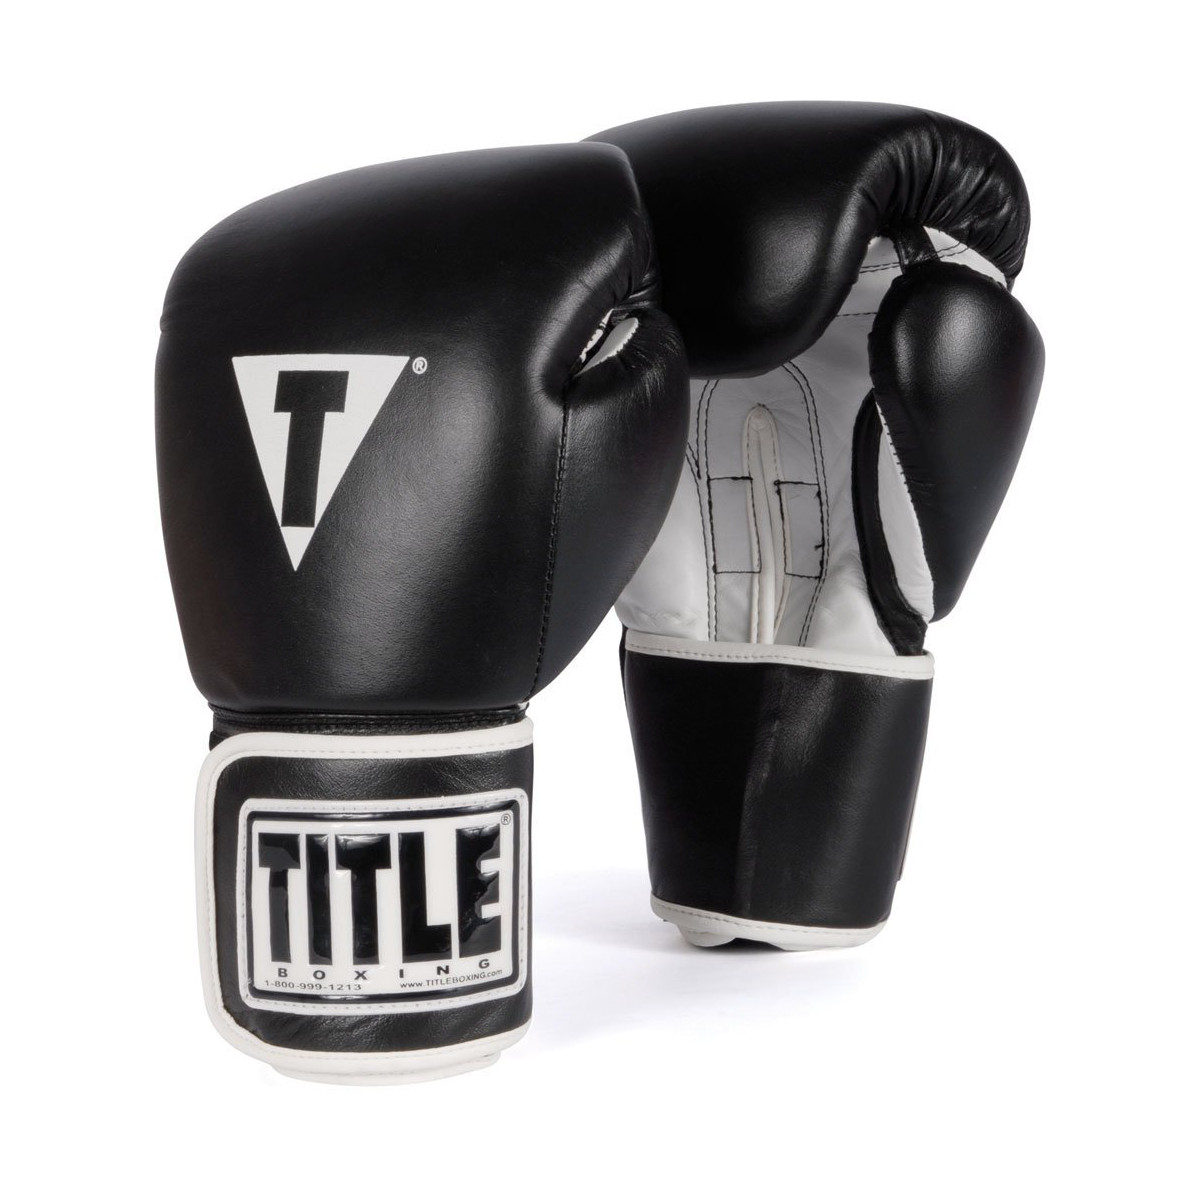 Title-Boxing-Gloves